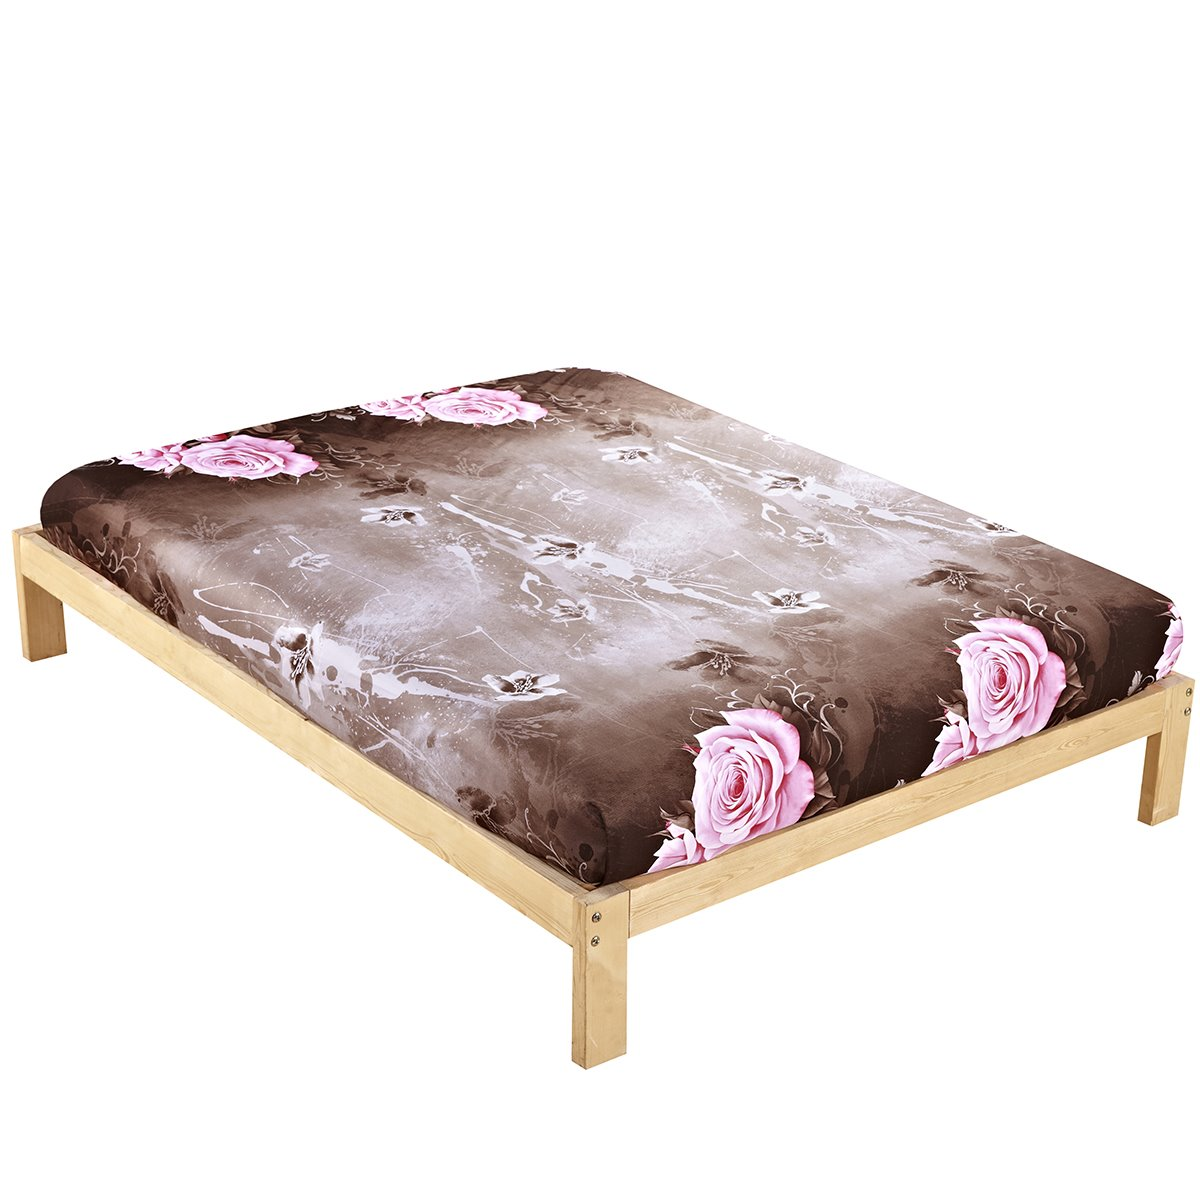 Lifelike Big Pink Roses with Brown Background Cotton Sheet